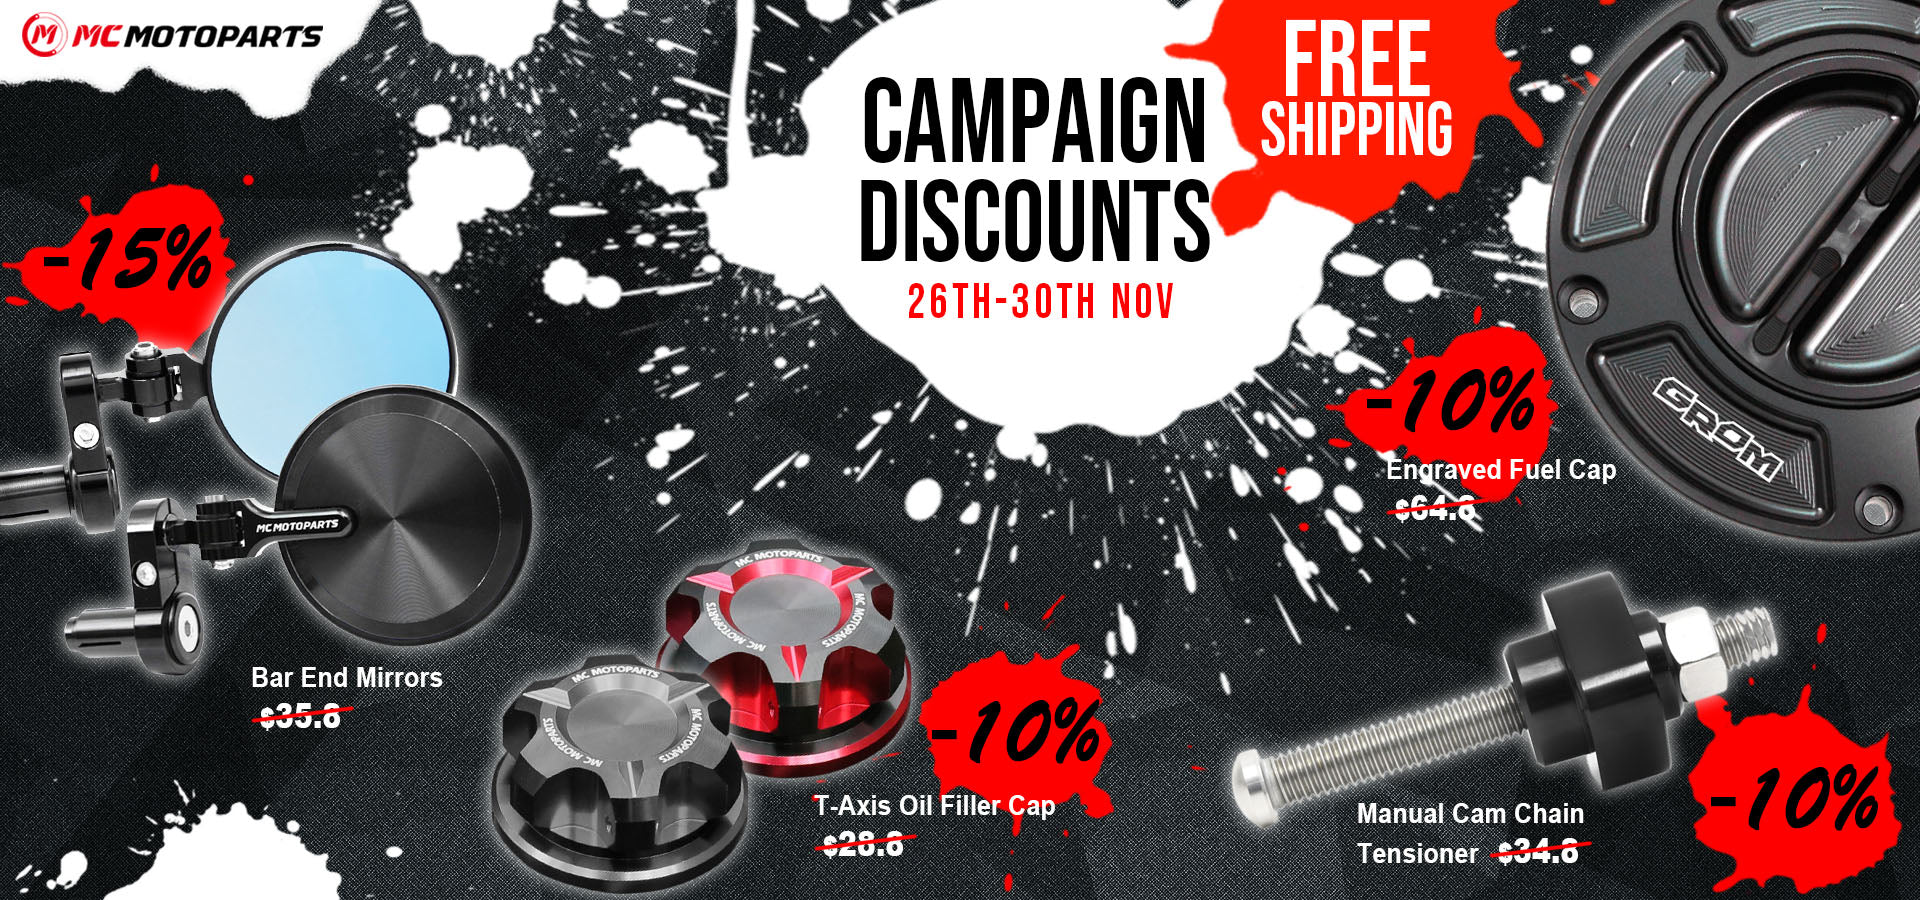 mc motoparts black friday & cyber monday campaign discount 2020